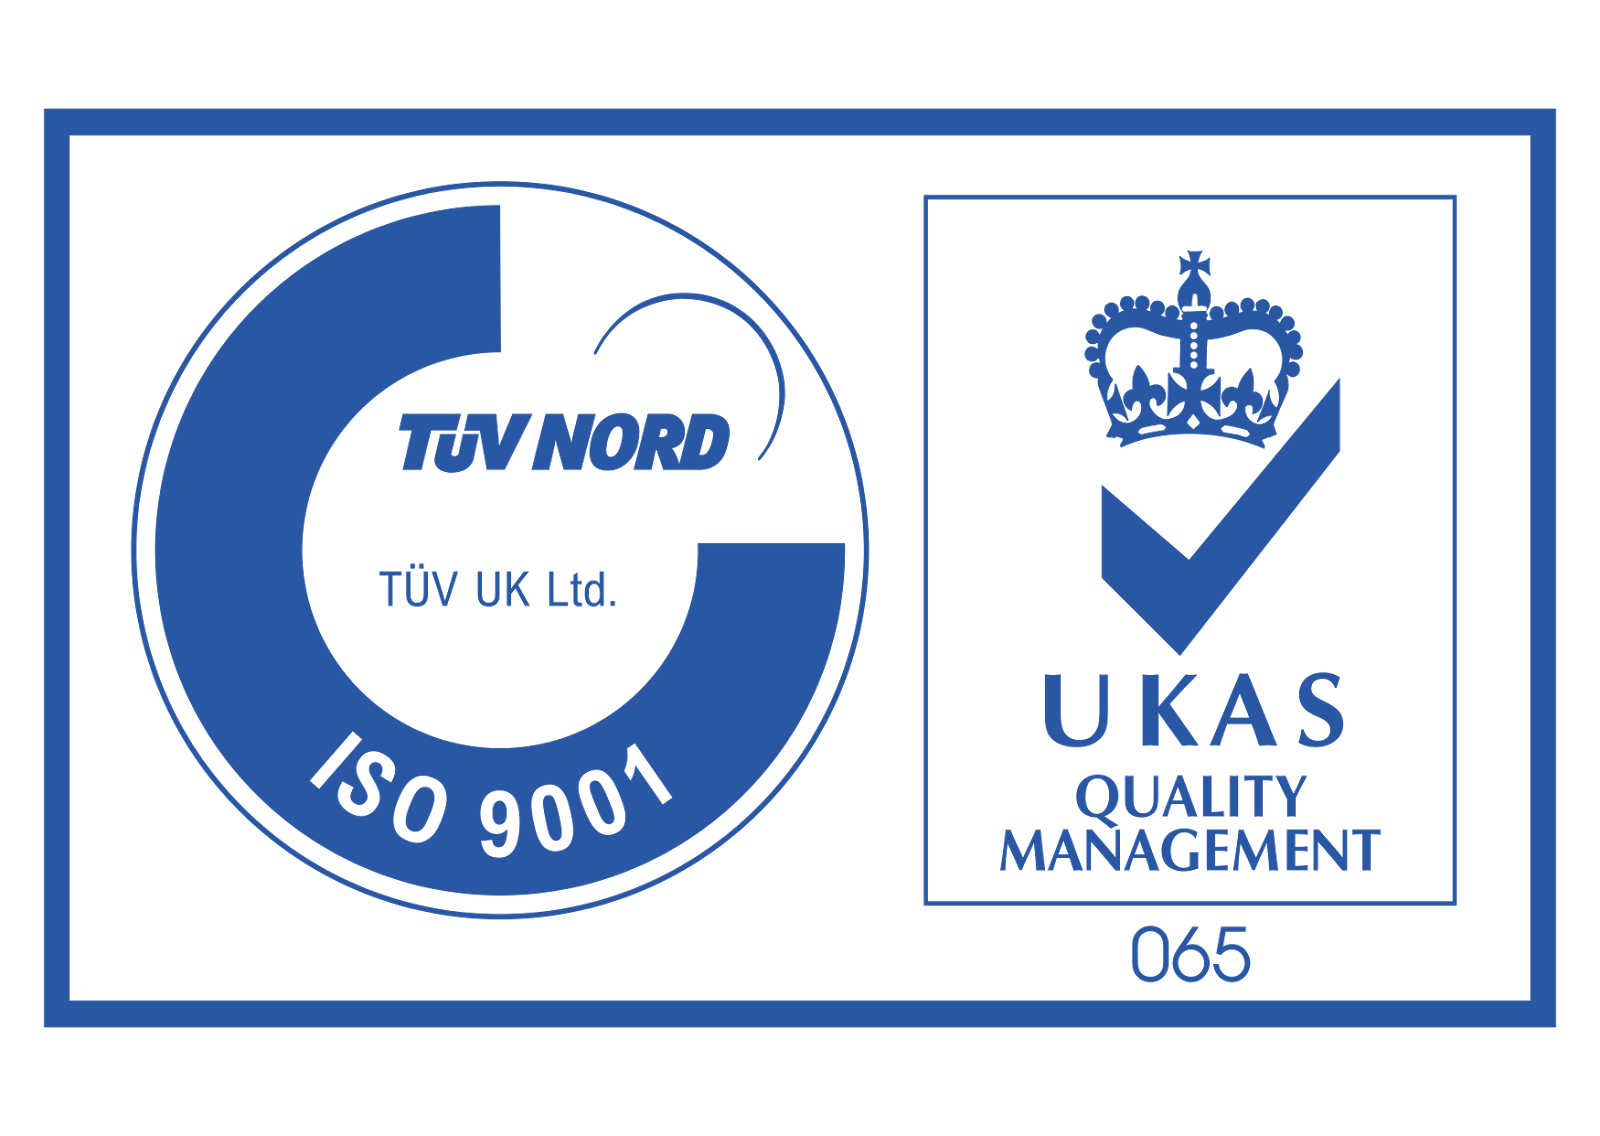 ISO9901:2015 Successful Re-Accreditation